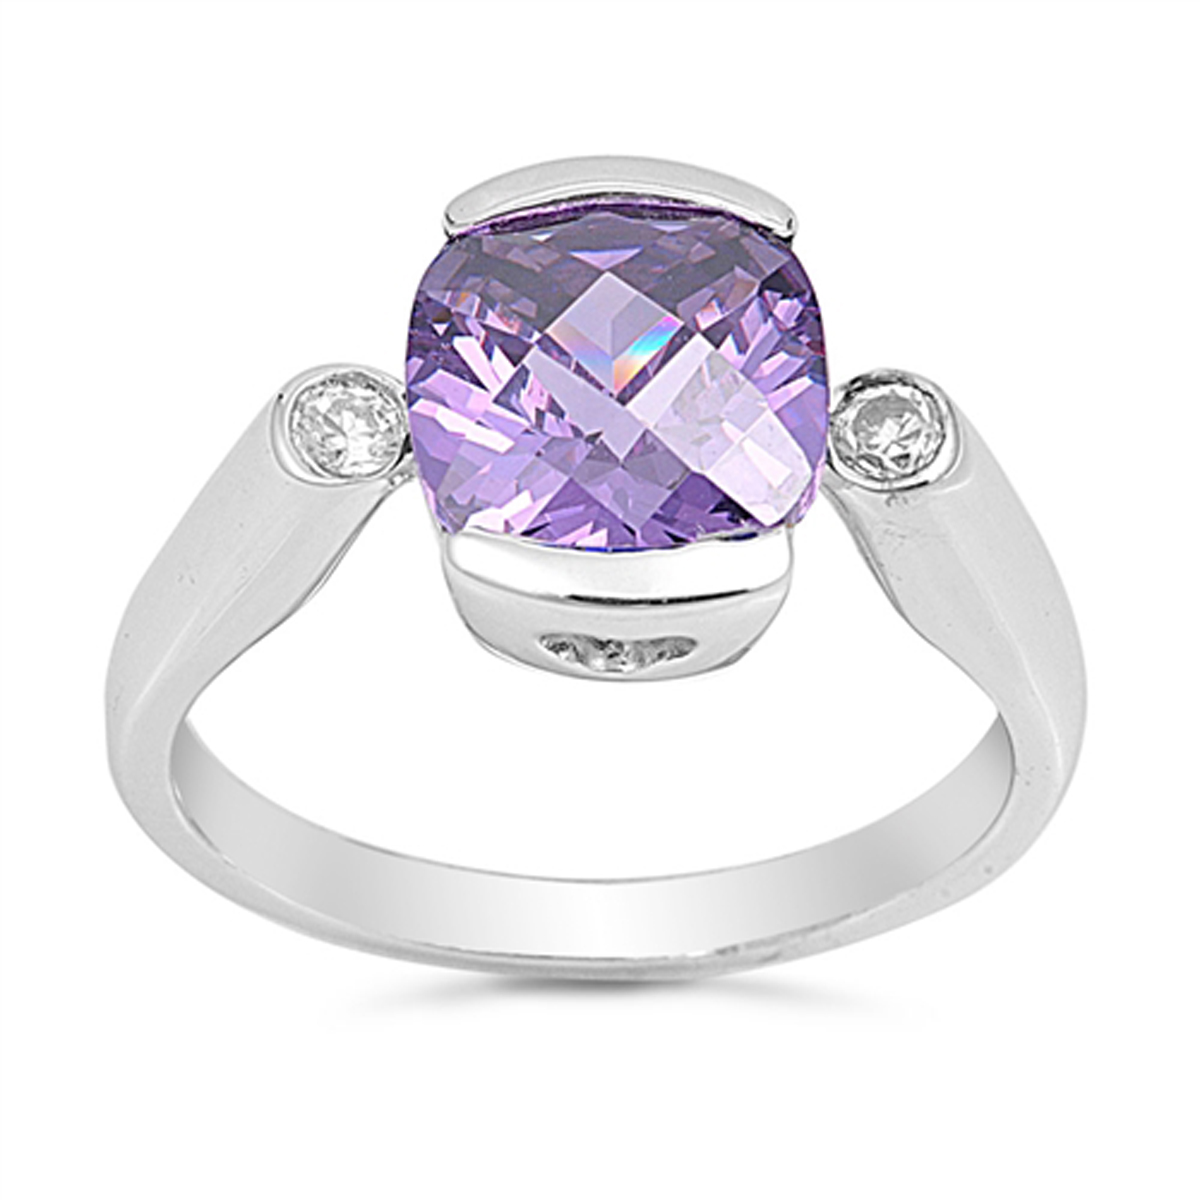 Sterling Silver Stunning Women's Flawless Simulated Amethyst Cubic Zirconia Heart Cutout Ring (Sizes 5-9) (Ring Size 5)